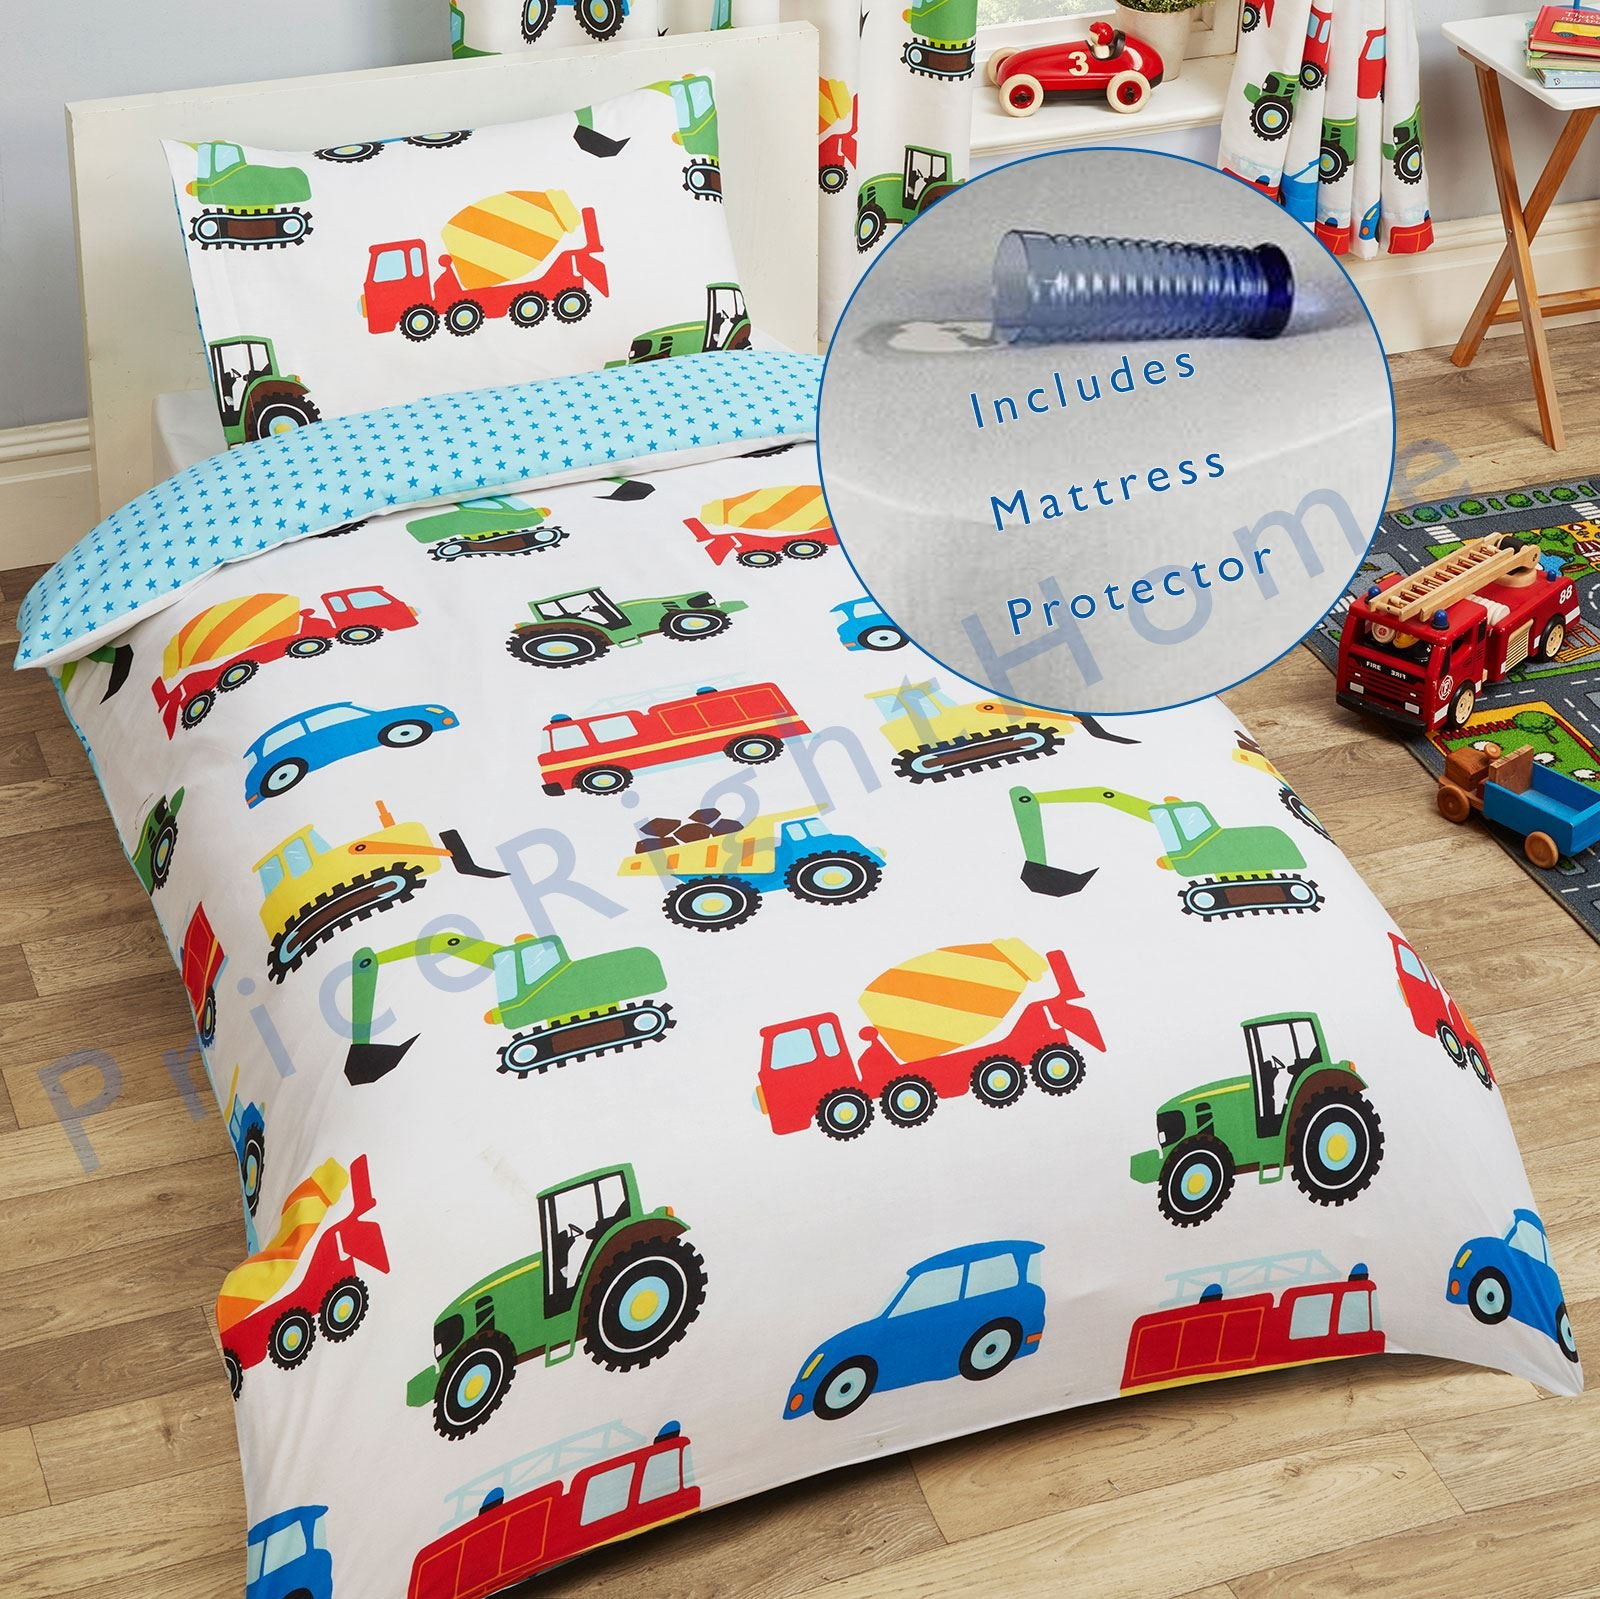 Trucks and Transport Junior/Toddler Duvet Cover and Pillowcase Set + Toddler Bed Mattress Waterproof Cover 140 x 70cm